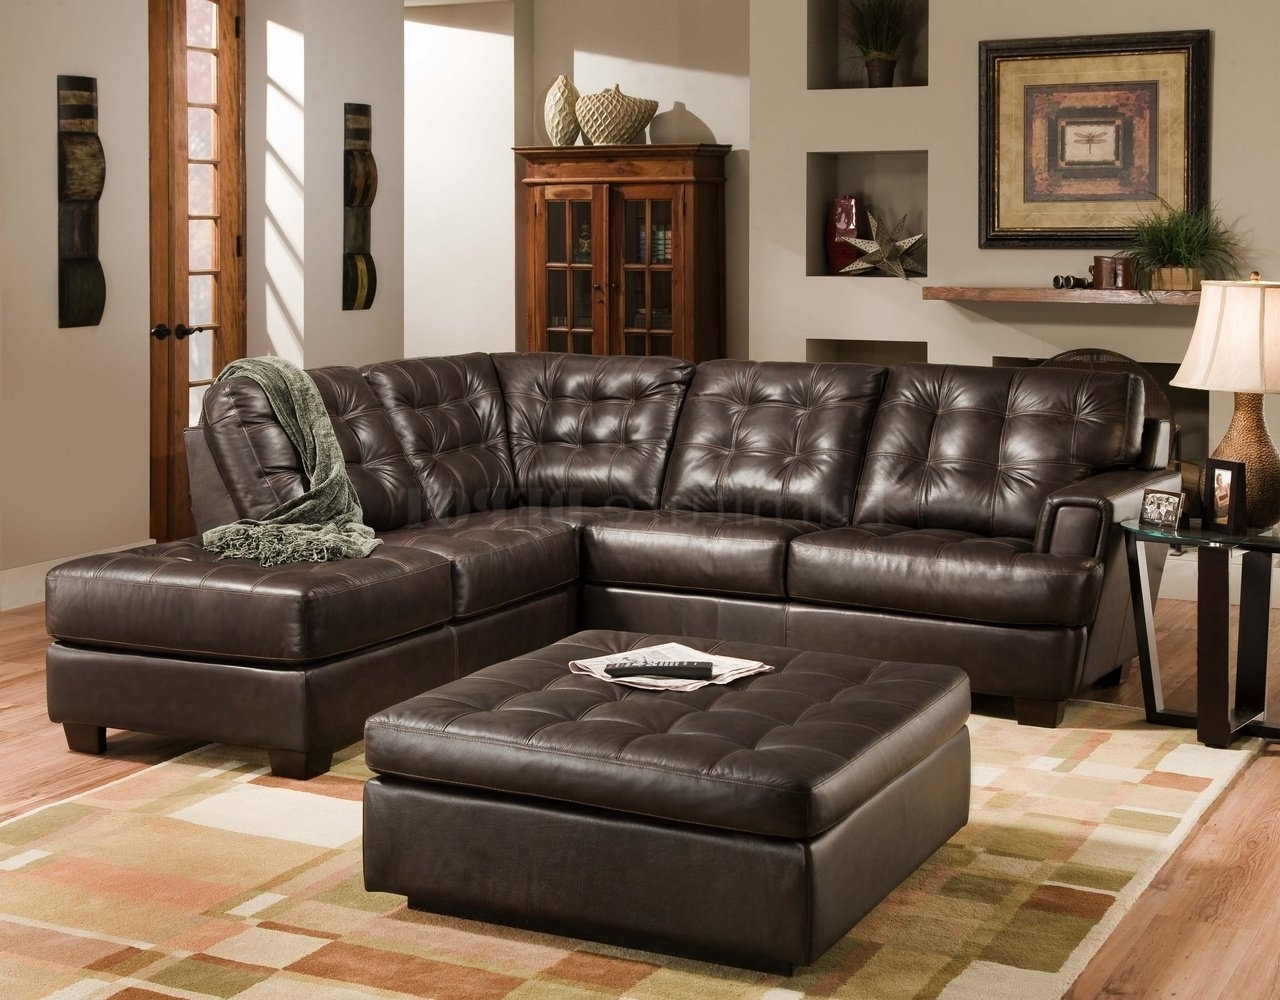 Double Chaise Loveseat Leather Loveseat With Chaise Large Within Most Up To Date Brown Sectionals With Chaise (View 8 of 15)